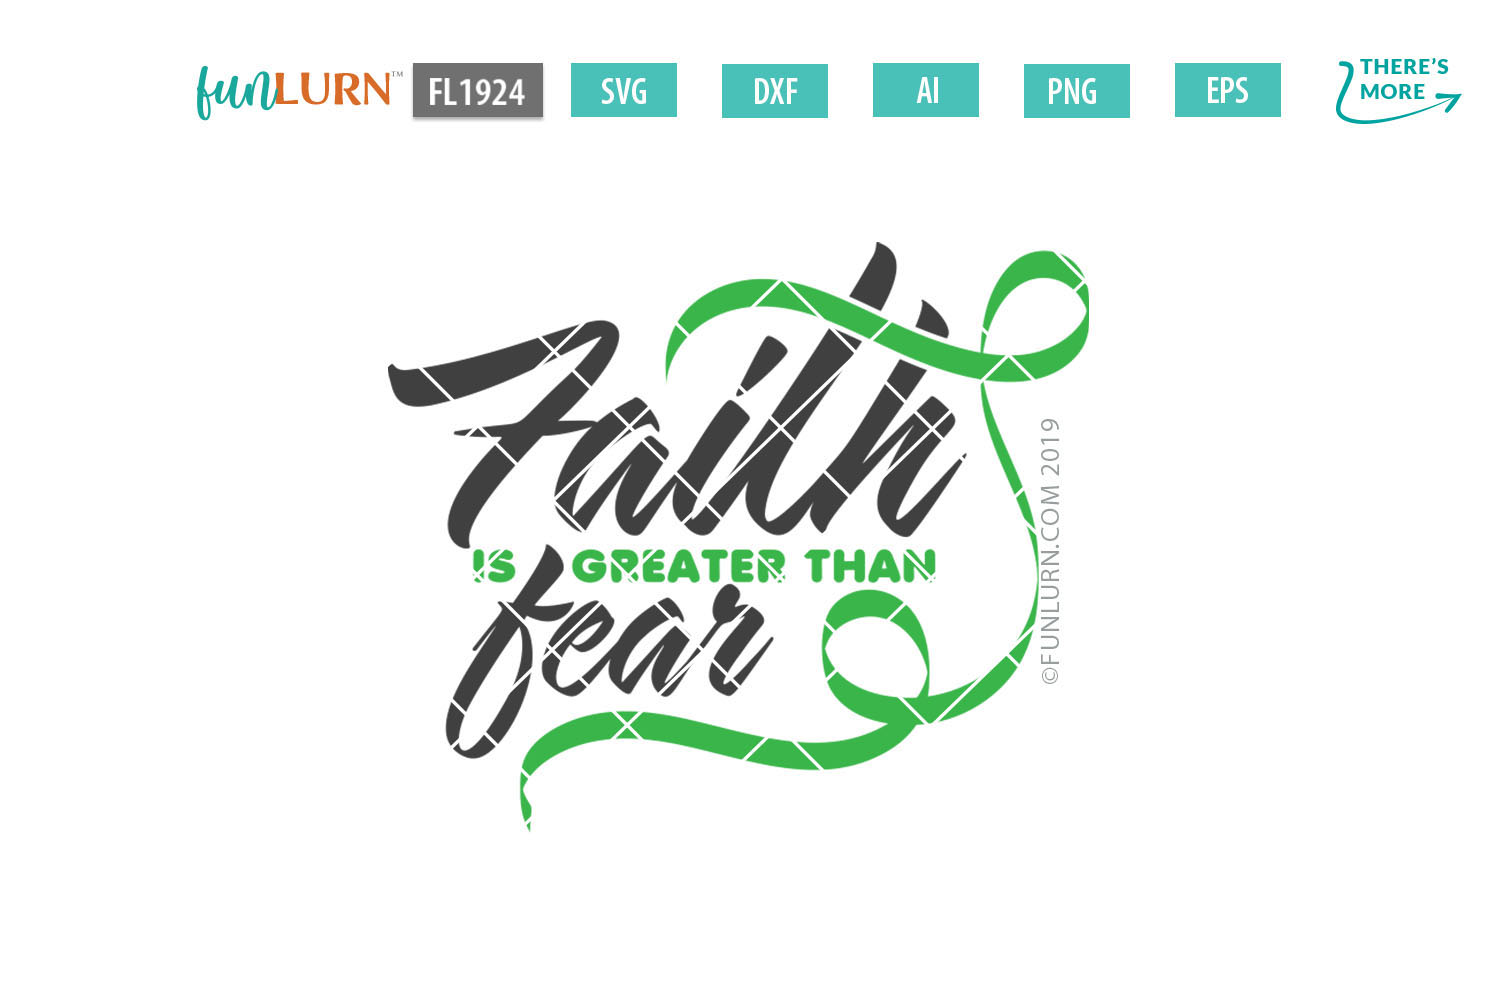 Faith is Greater Than Fear Light Green Ribbon SVG Cut File example image 2